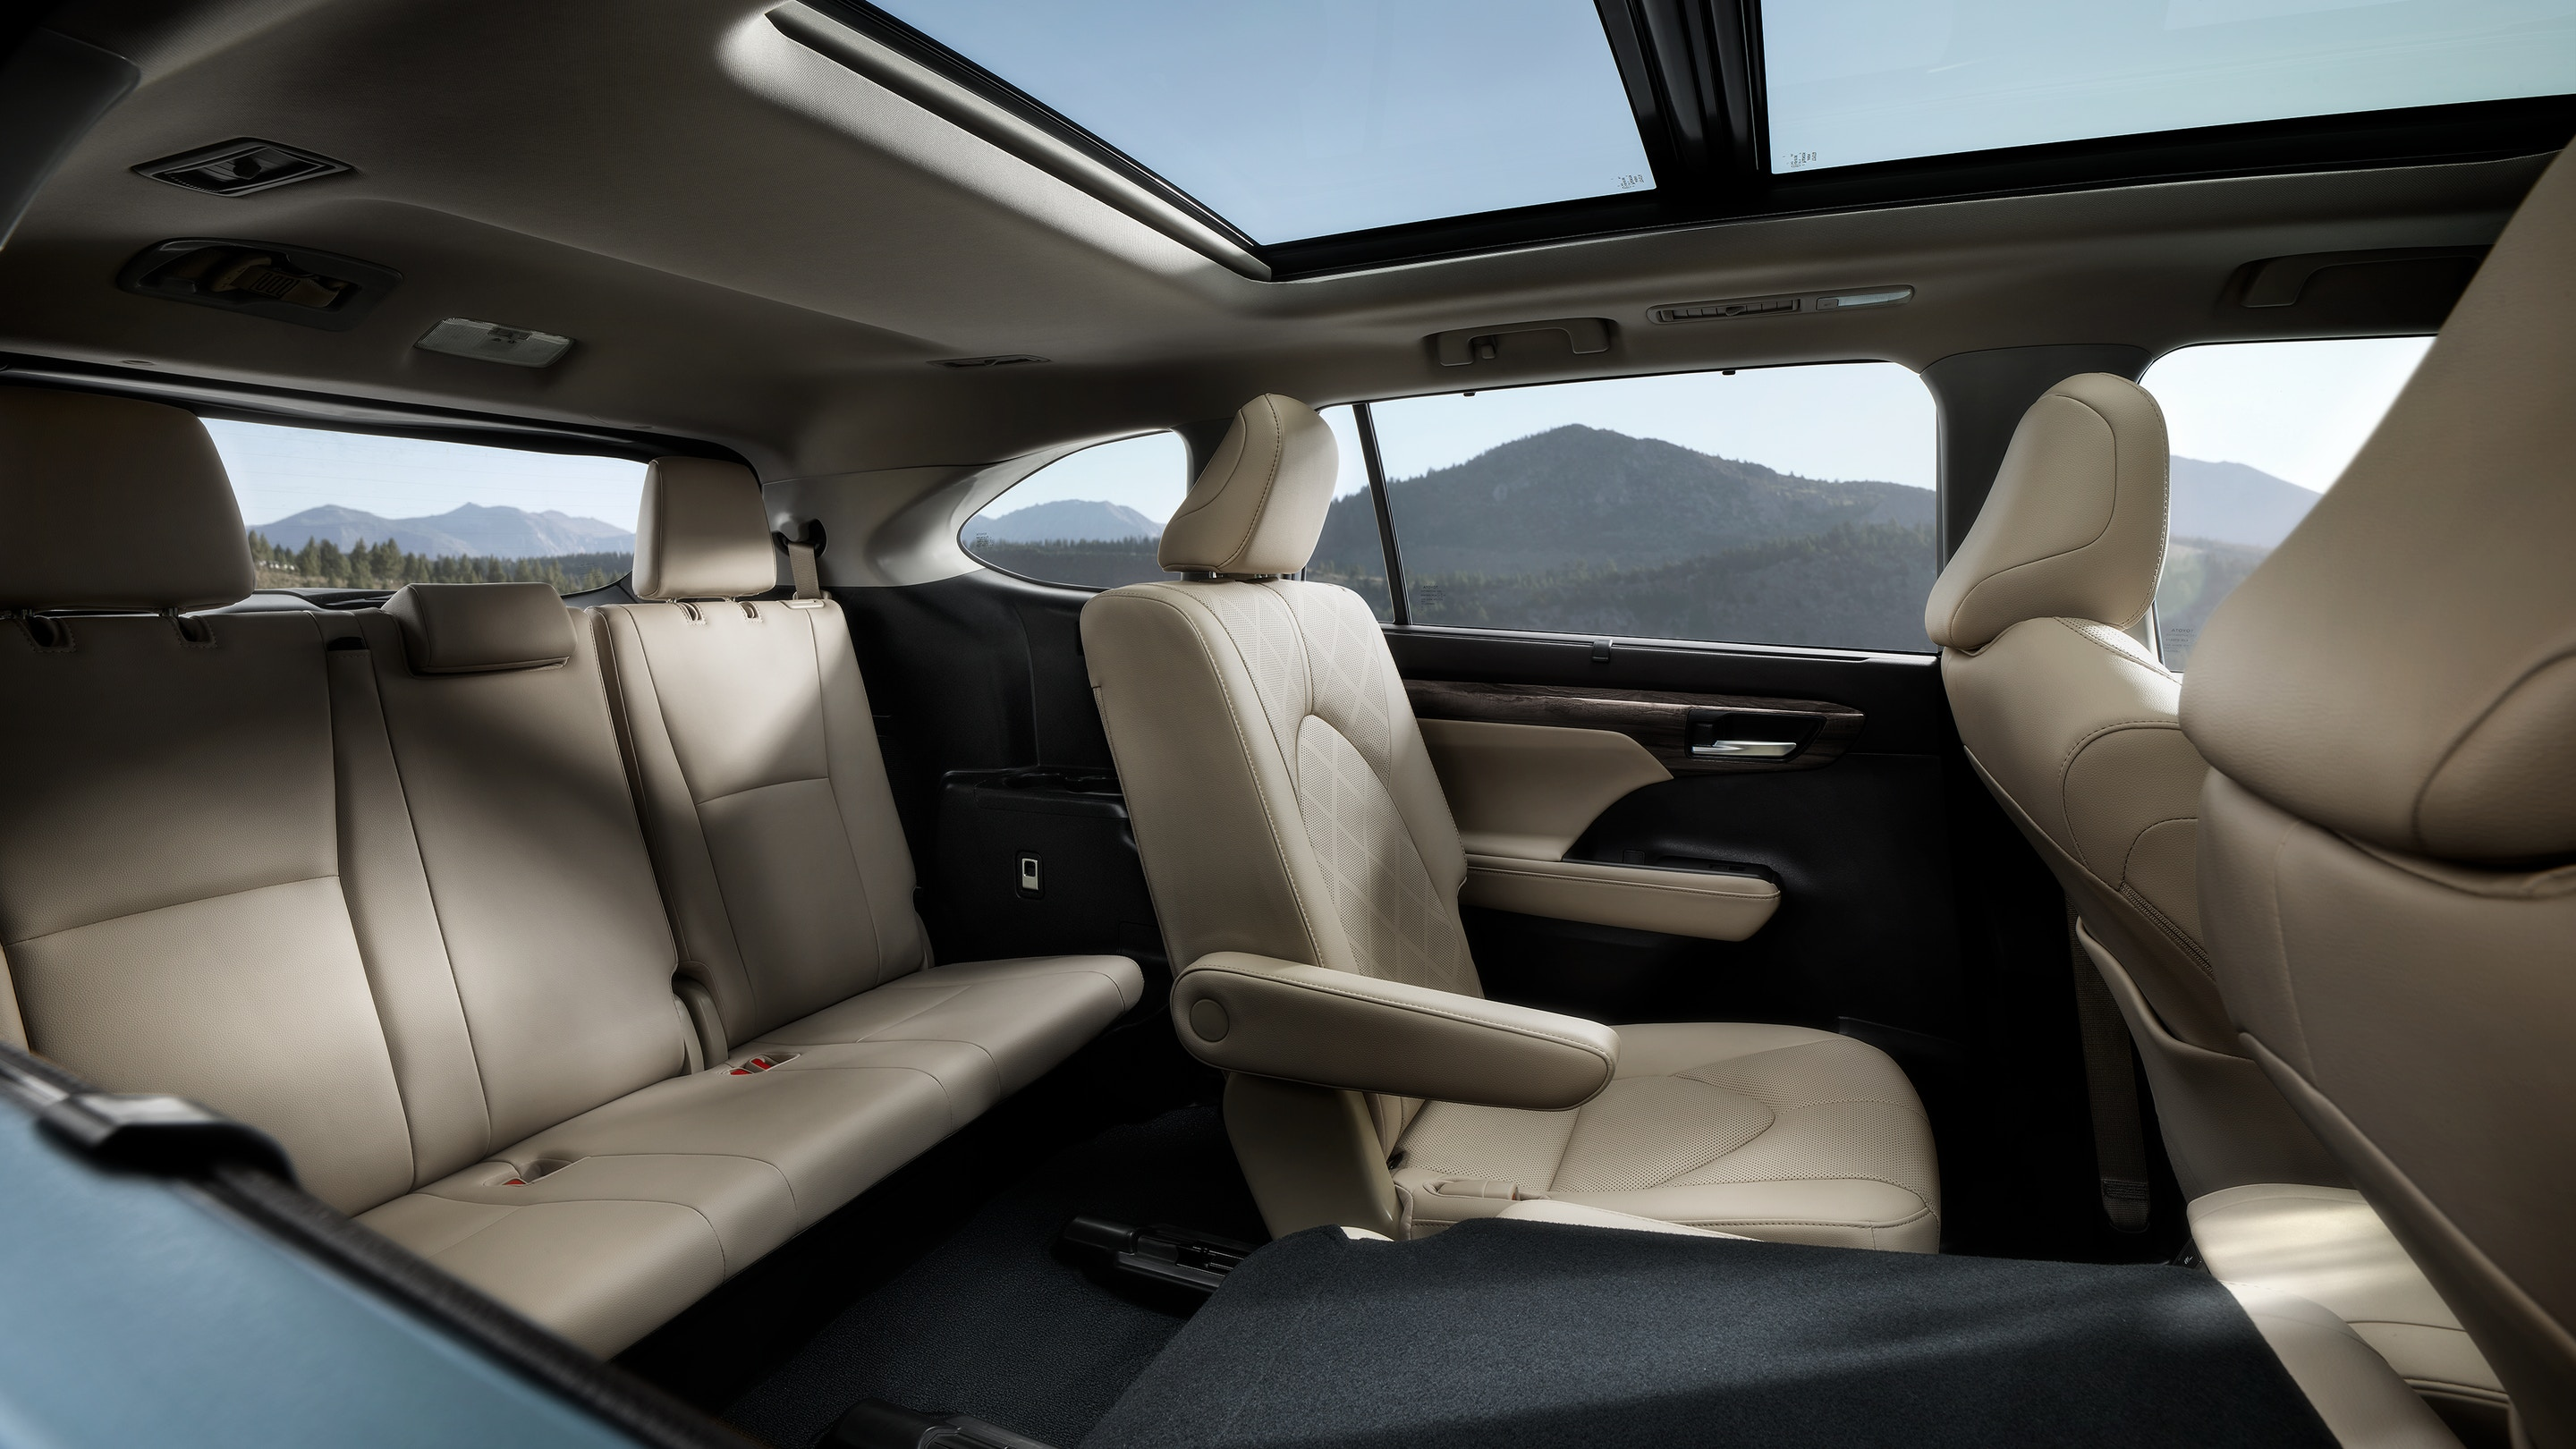 Spacious Accommodations in the 2020 Highlander